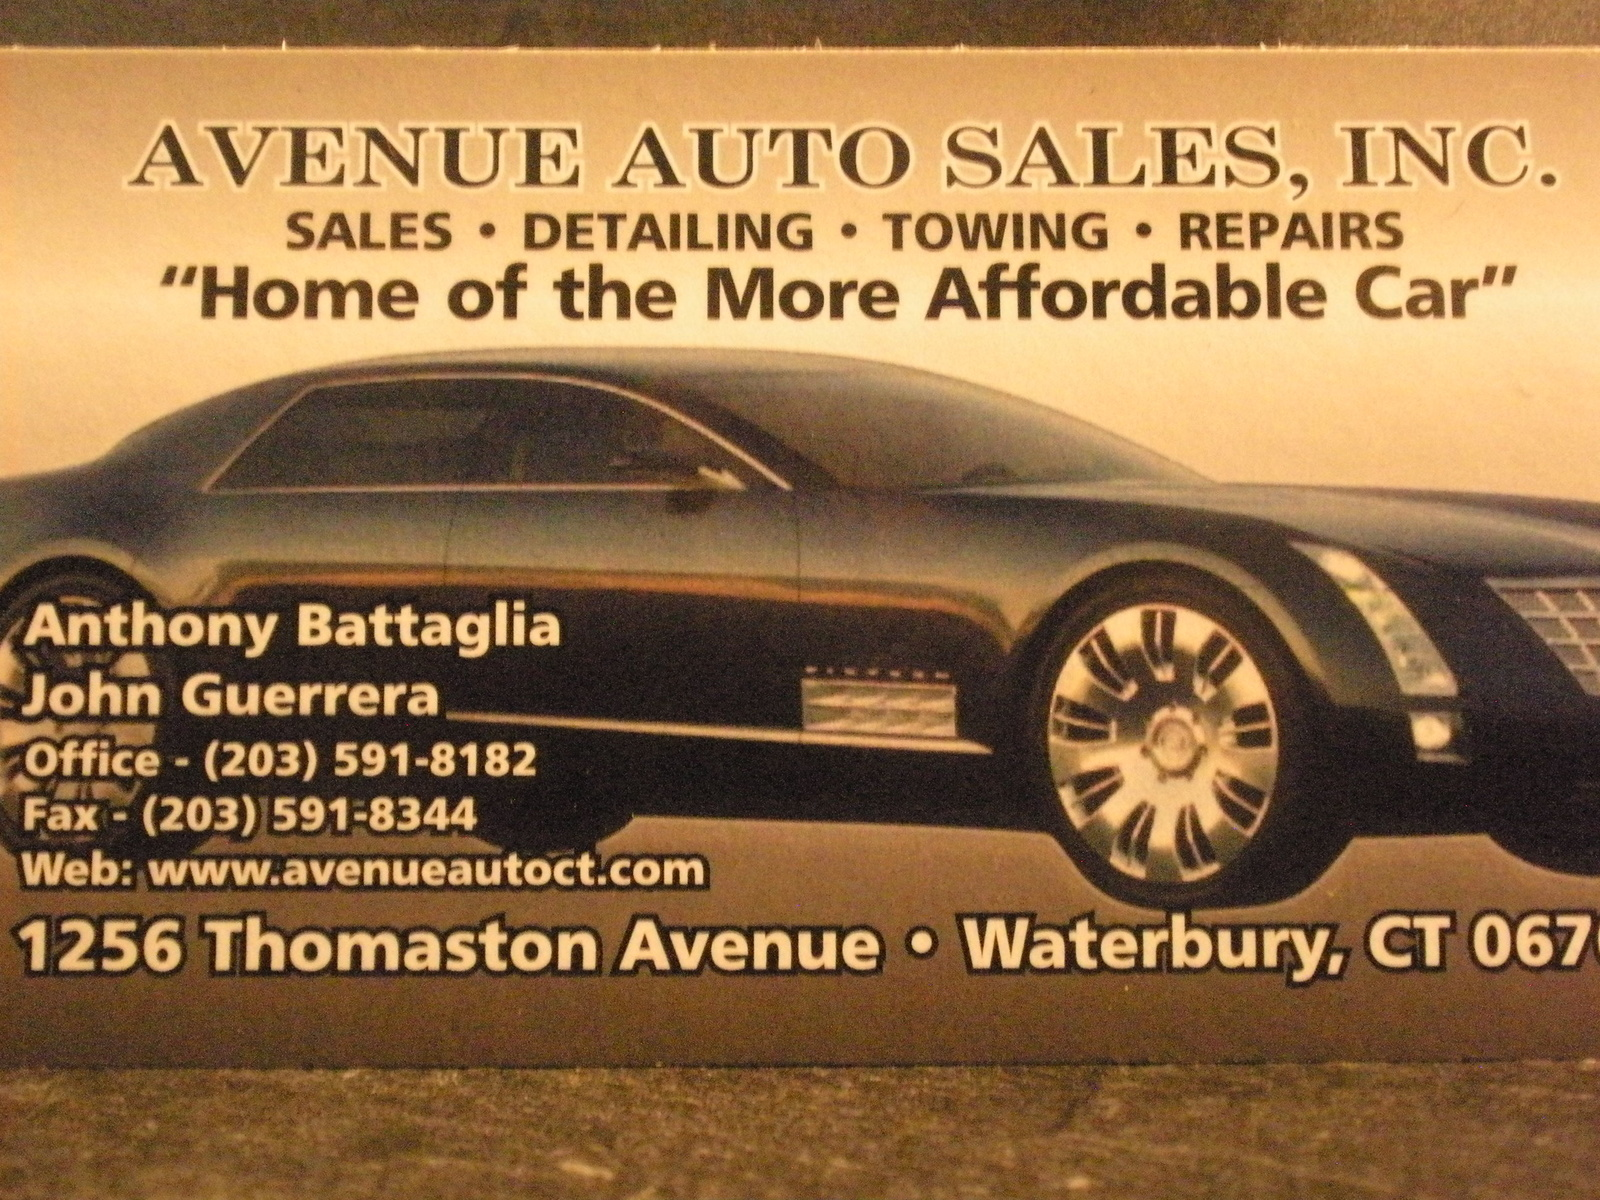 Avenue Auto Sales Waterbury CT Read Consumer reviews Browse